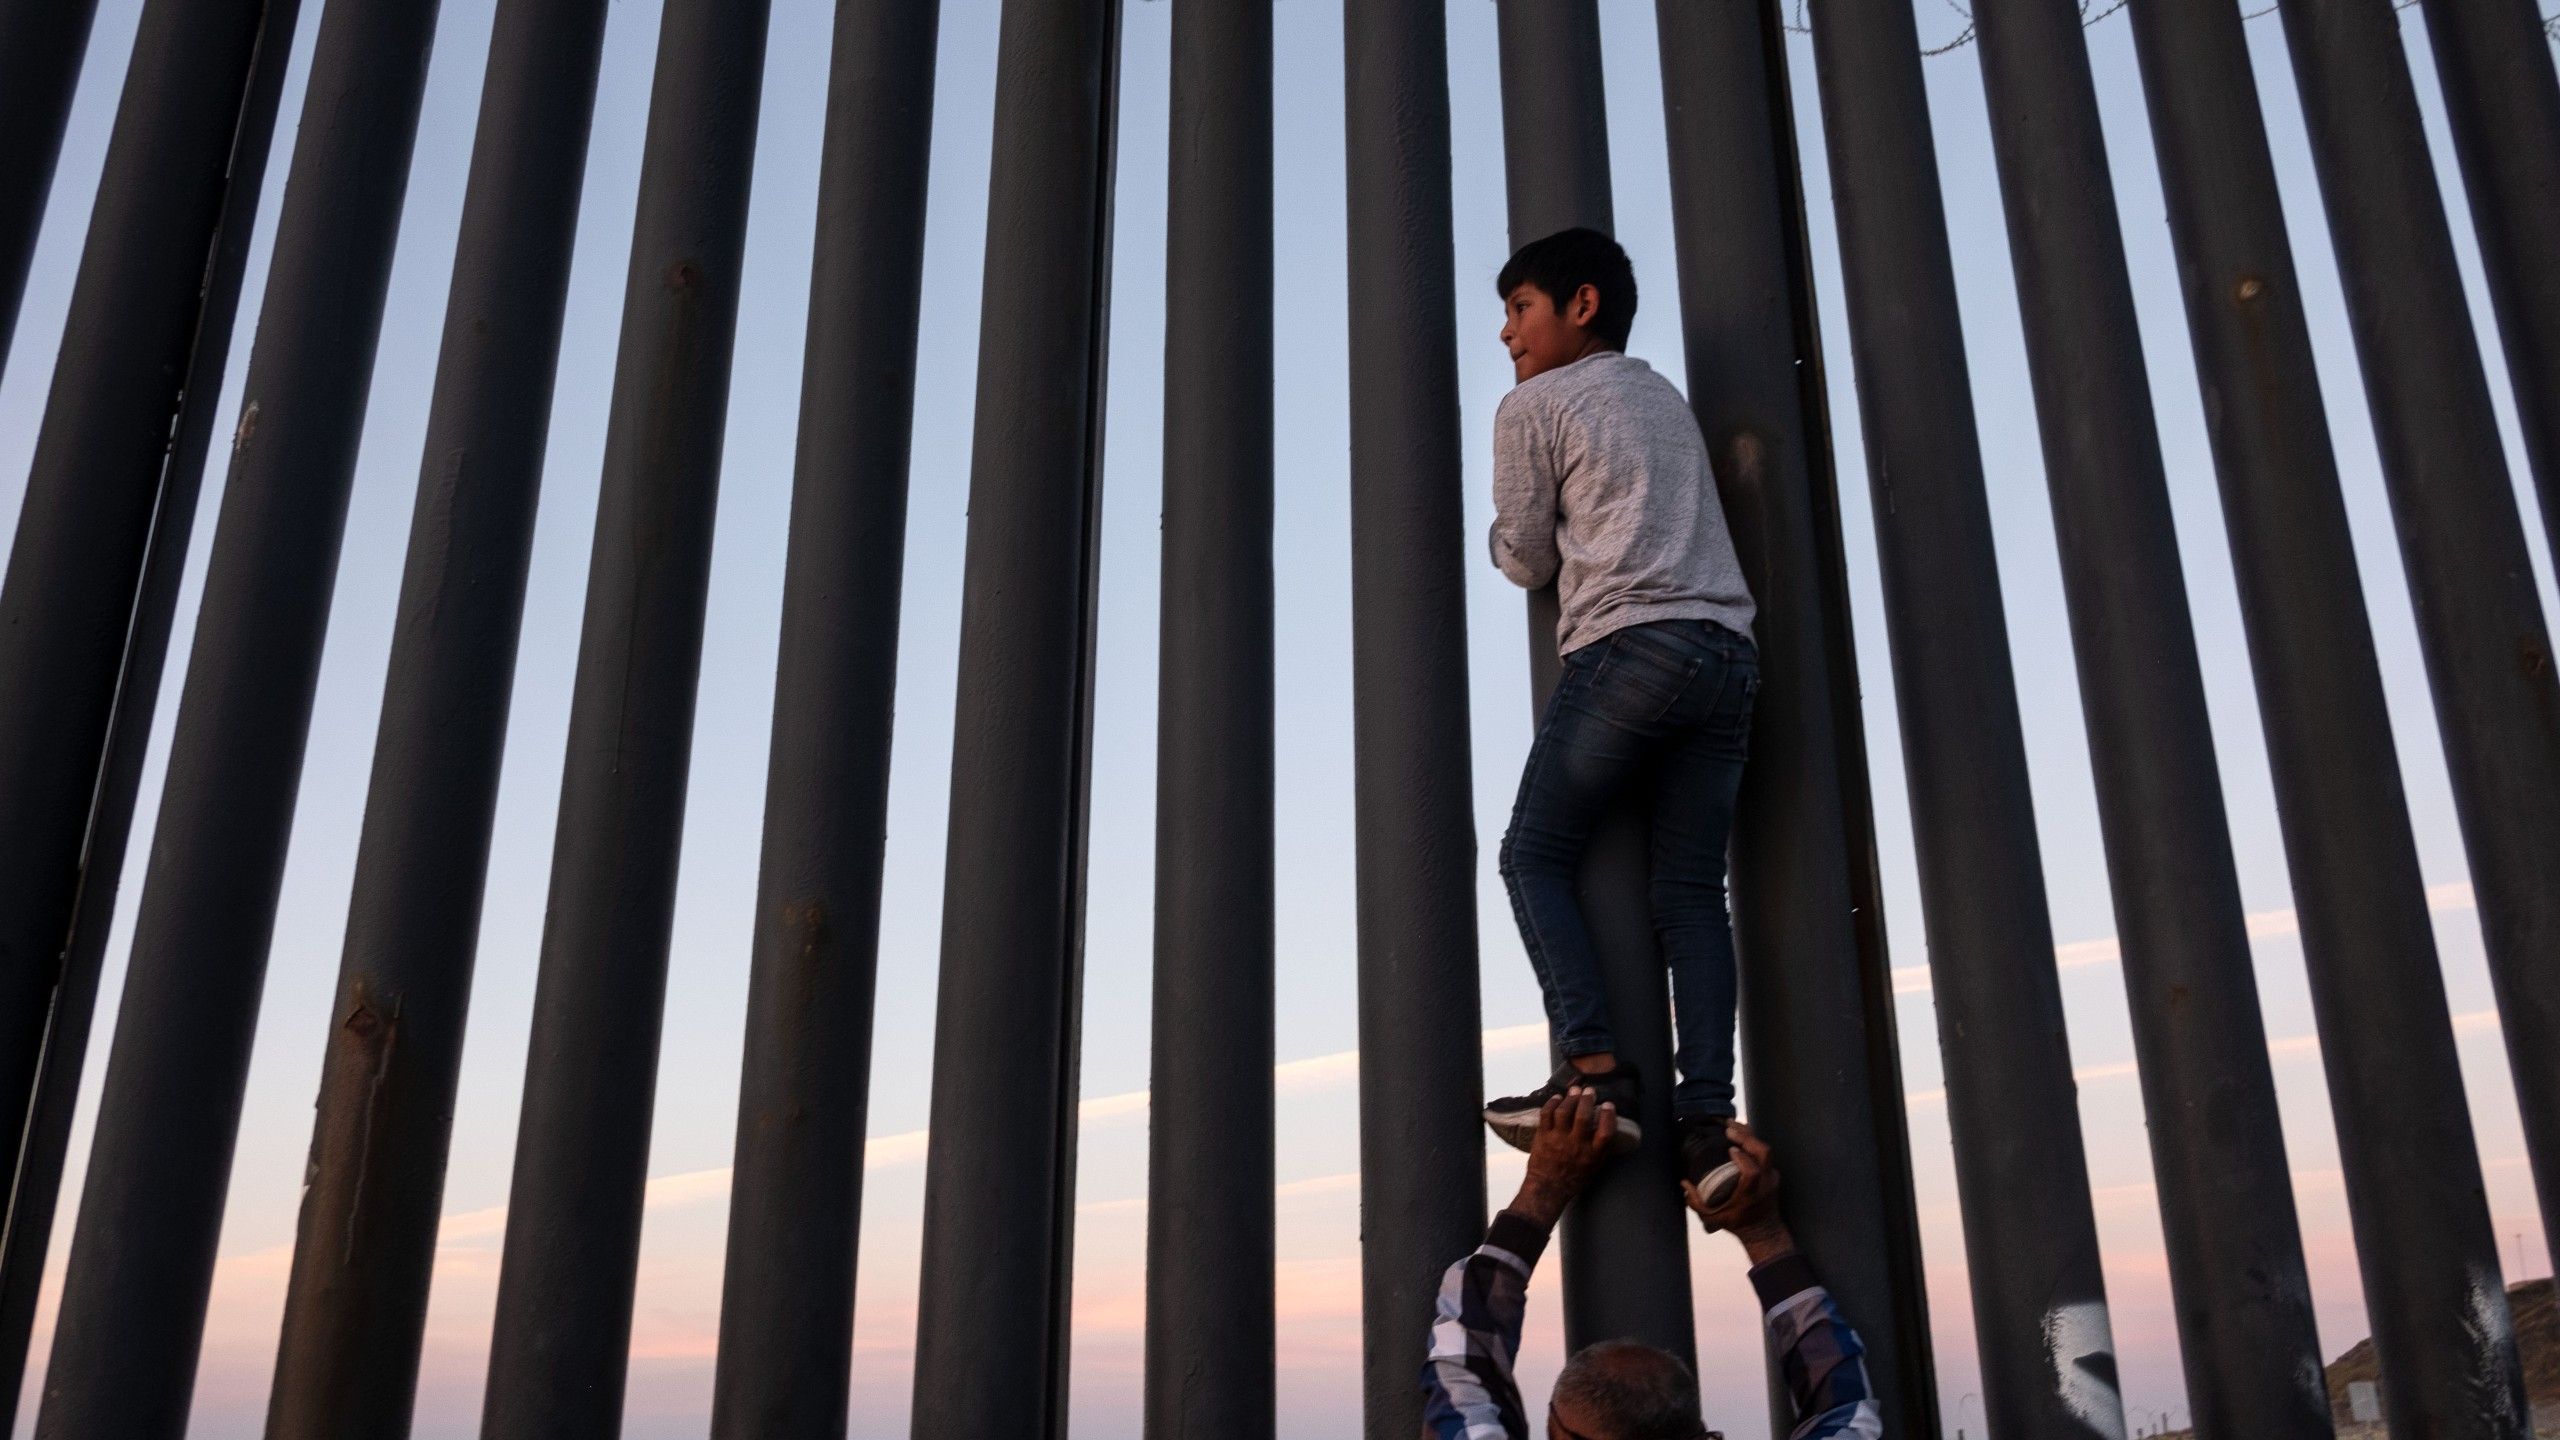 A man helps a boy to have a better look at the US-Mexico border wall in Playas de Tijuana, northwestern Mexico, November 18, 2018. (Credit: GUILLERMO ARIAS/AFP/Getty Images)